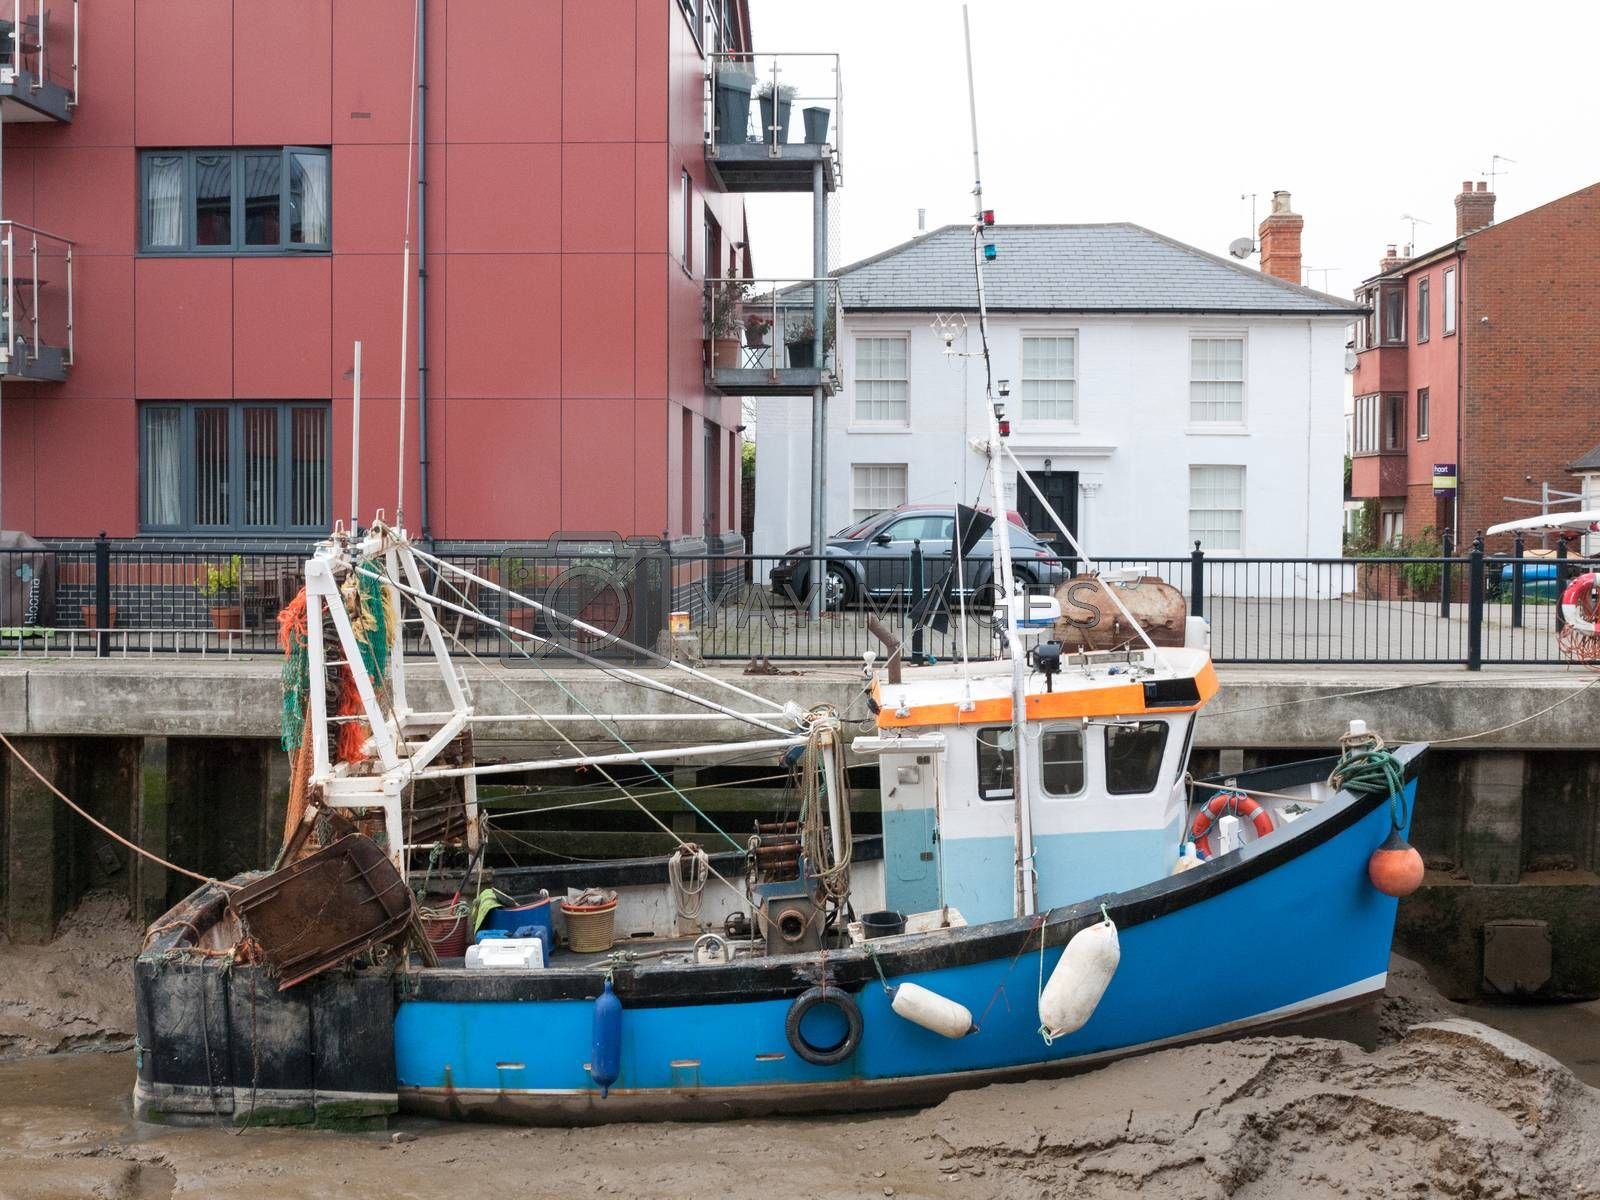 blue fishing boat parked in pier mud dock from side view; essex; england; uk